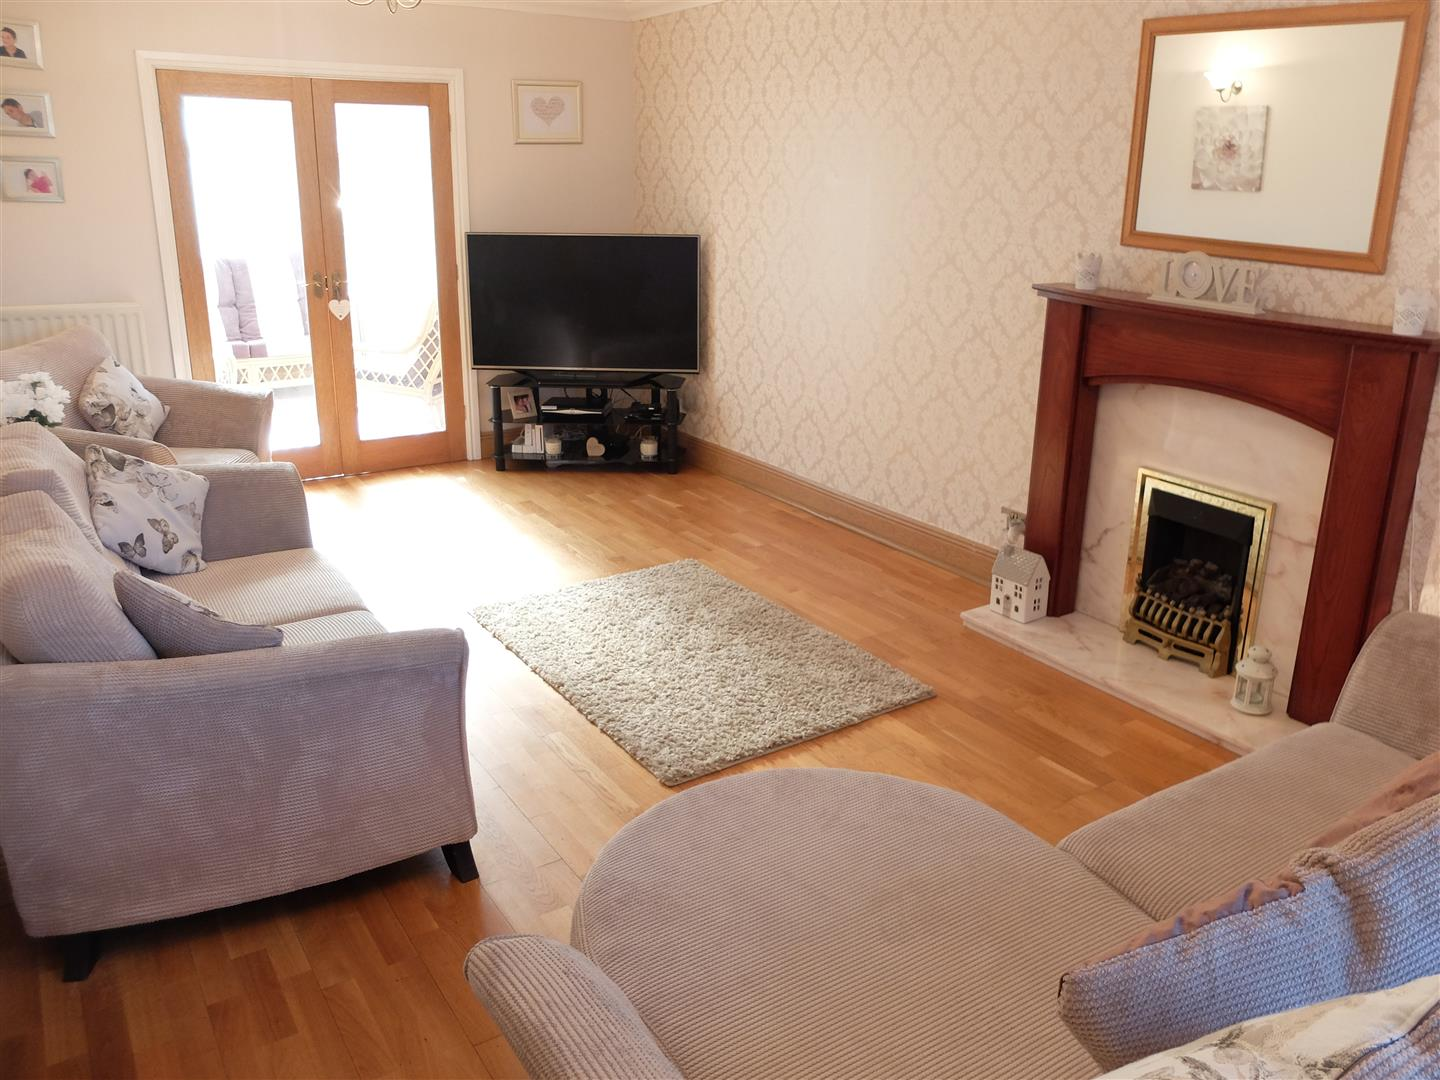 4 Bedrooms House - Semi-Detached For Sale 15 Hespek Raise Carlisle